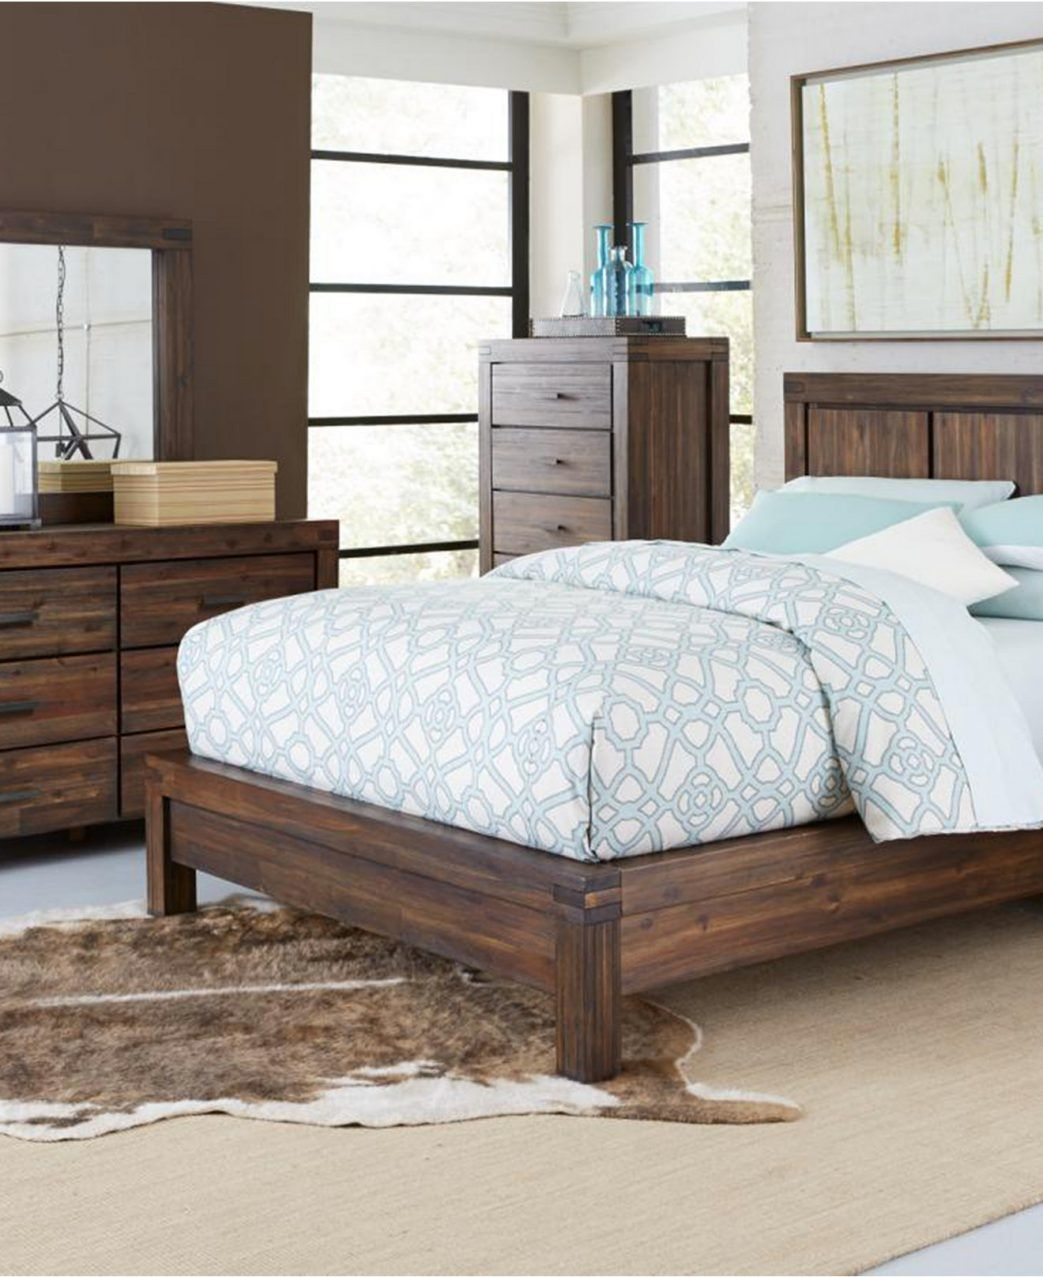 macy&aposs small scale bedroom furniture * small bedroom